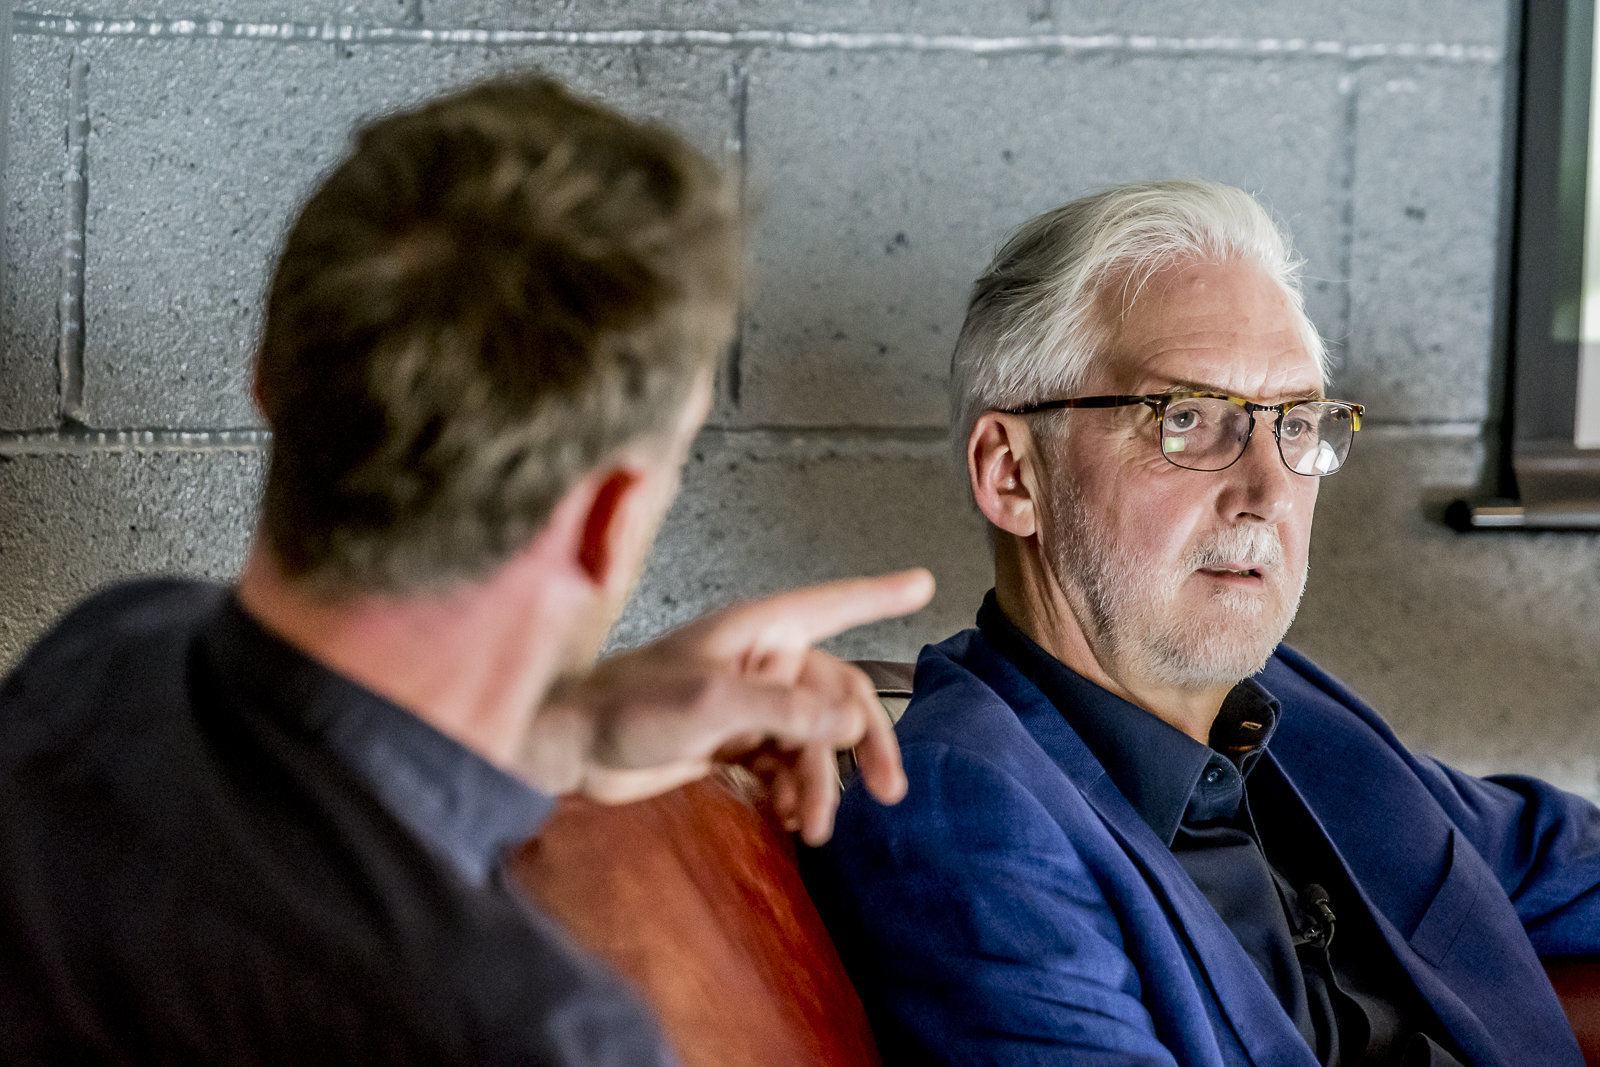 Brian Cookson in interview